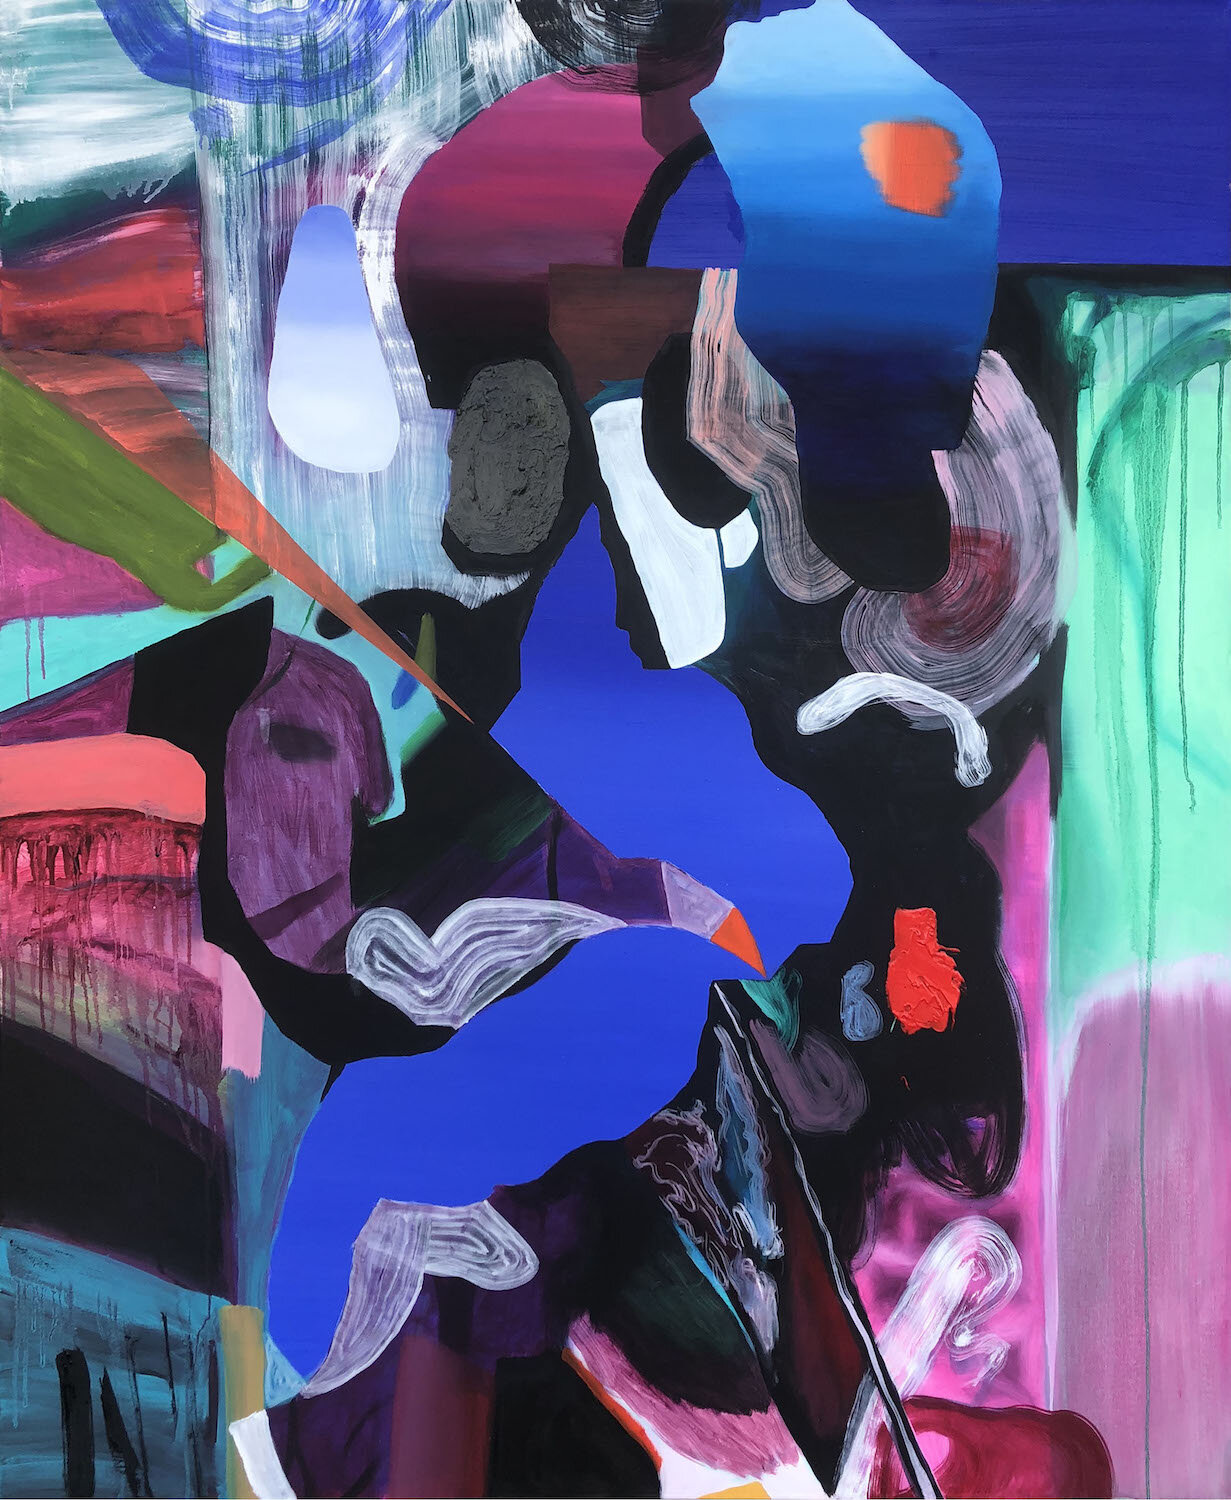 Keith Teo, 'I can't remember Adjacent Colors', 2019, oil on canvas, 150 x 120cm. Image courtesy of Richard Koh Fine Art and the artist.